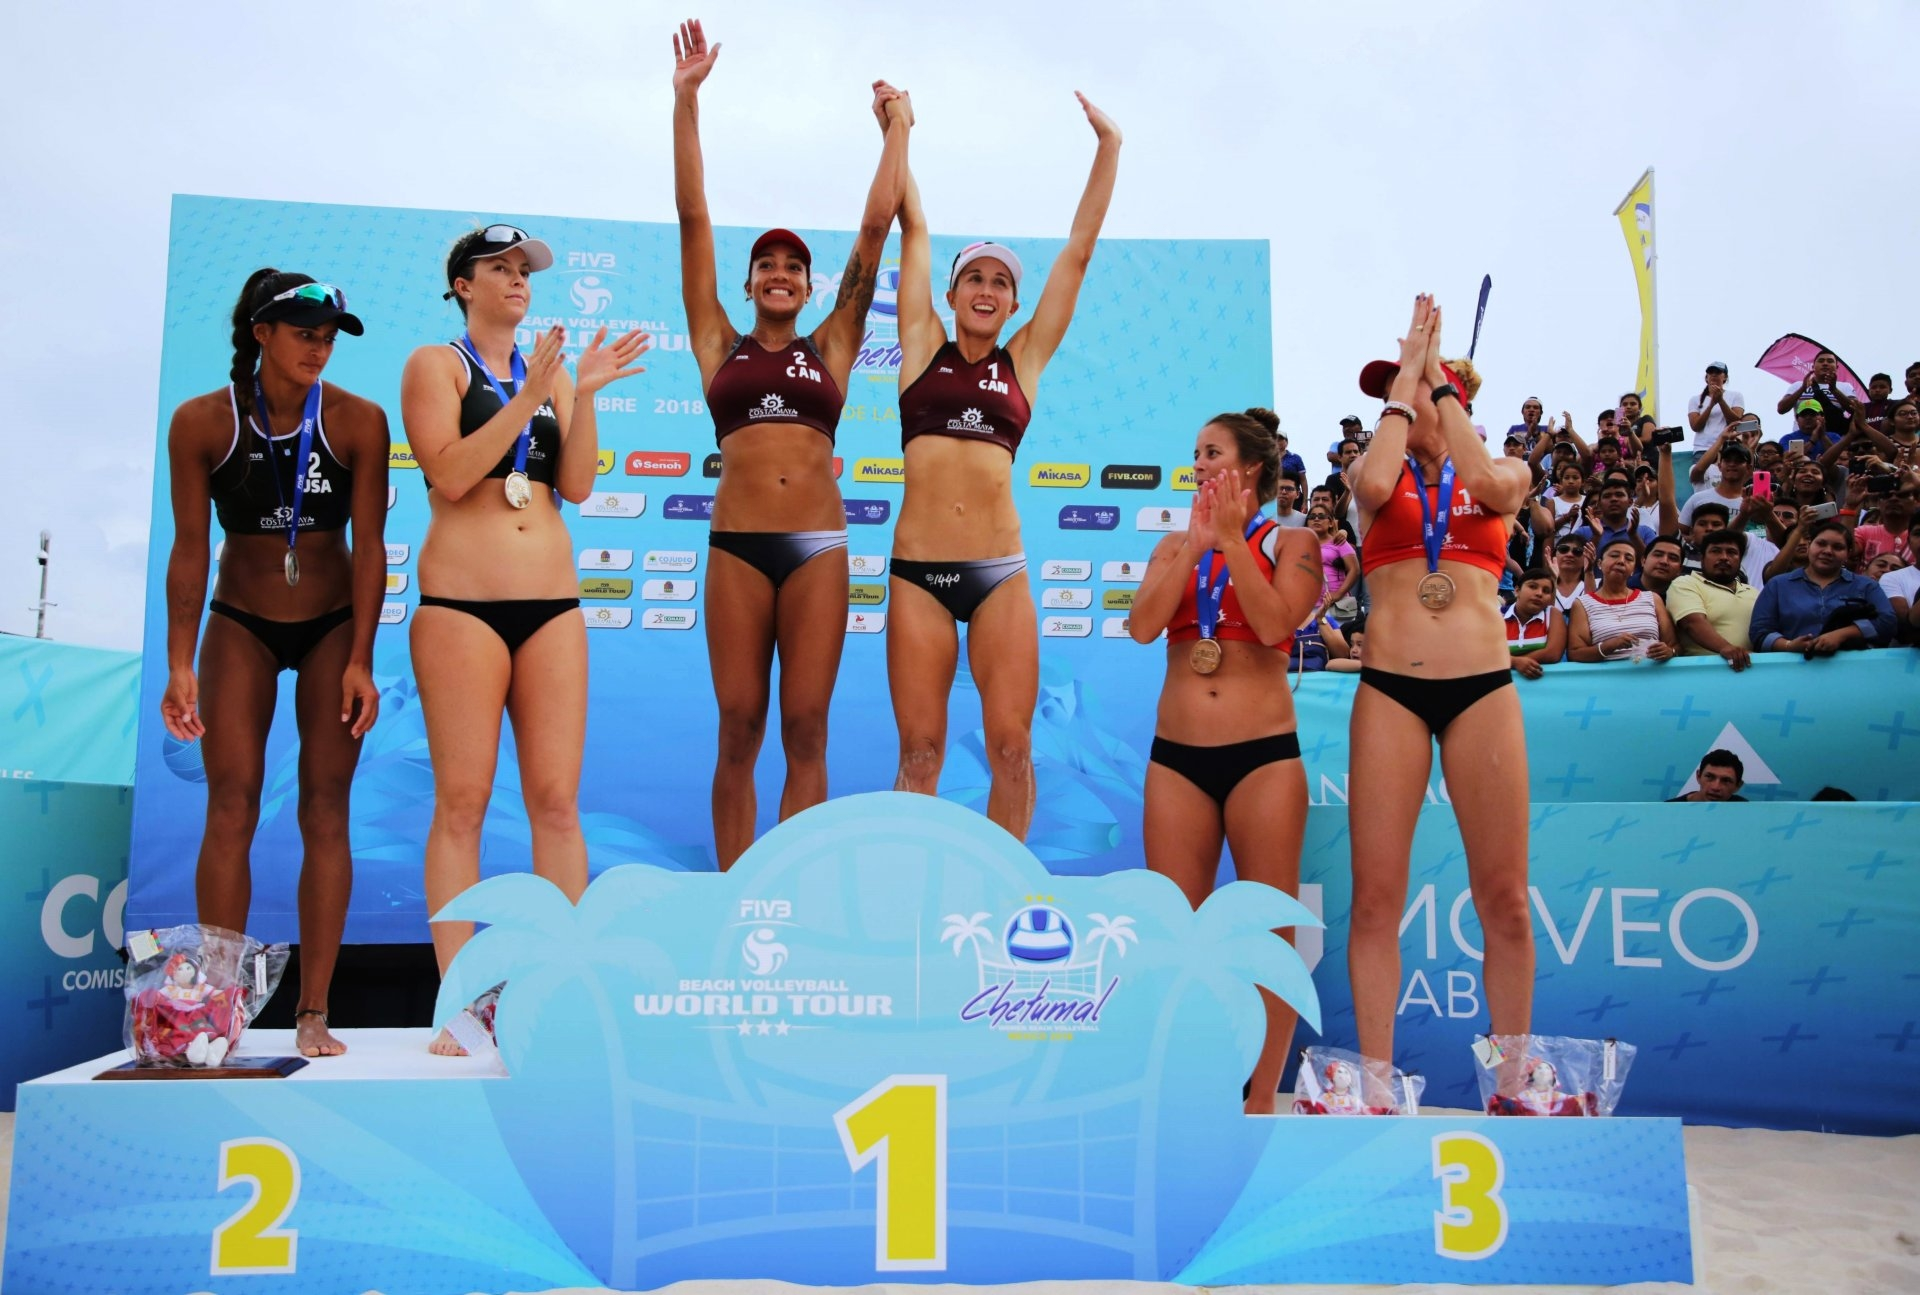 Wilkerson and Bansley celebrate at the top of the podium in Mexico (Photocredit: FIVB)